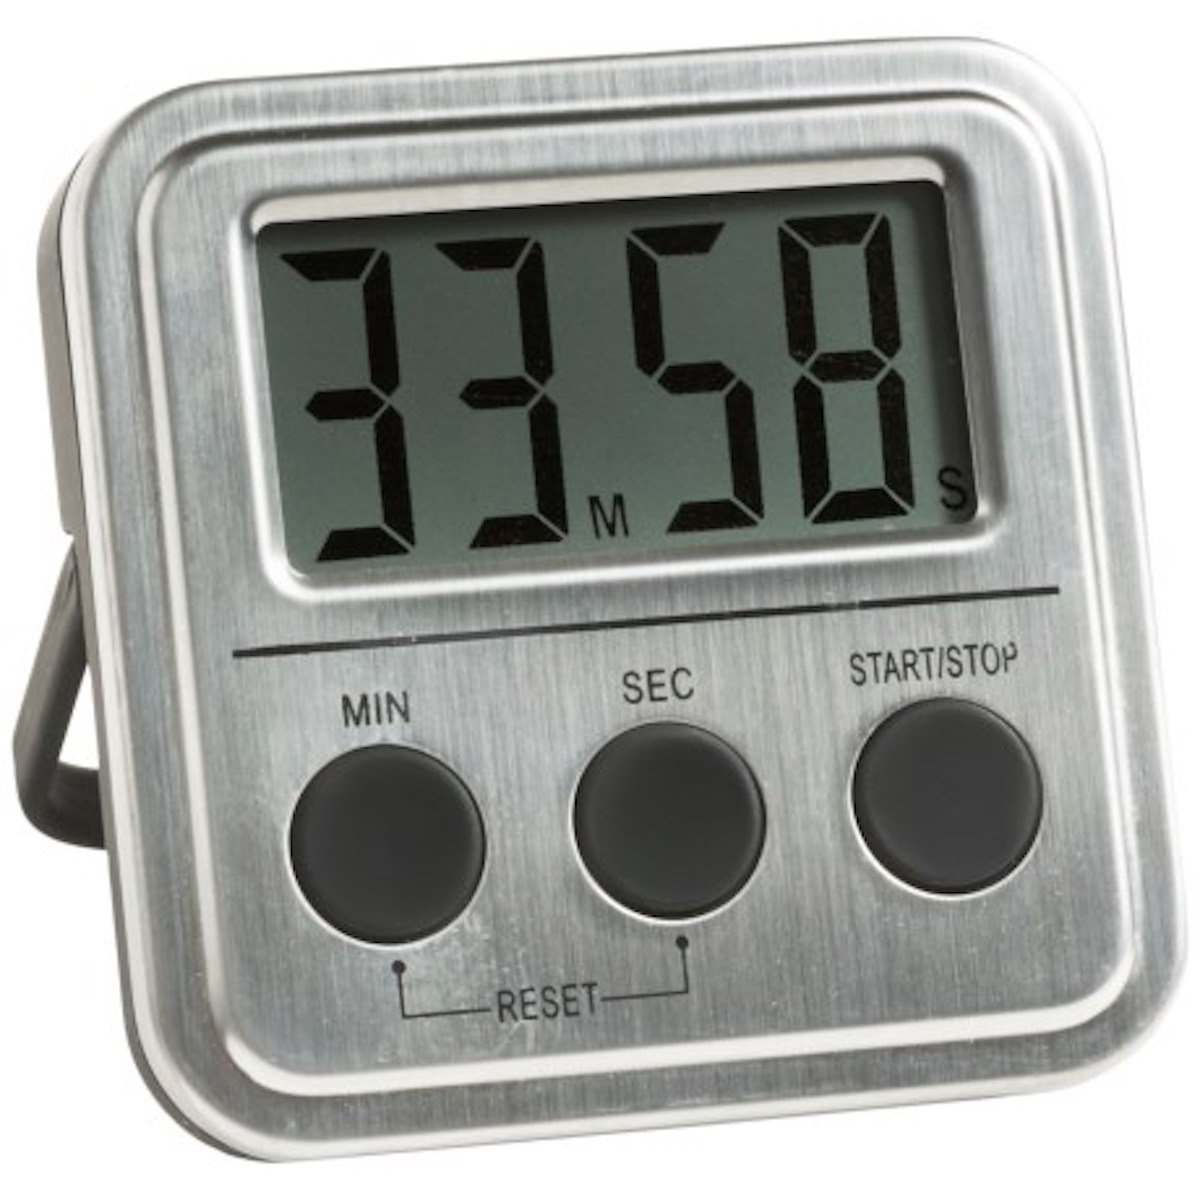 Lunarland Oggi STAINLESS STEEL DIGITAL COOKING TIMER EXTRA LARGE DIGITS - MAGNETIC & STAND by Lunarland Home Kitchen   B01DVR0UA8